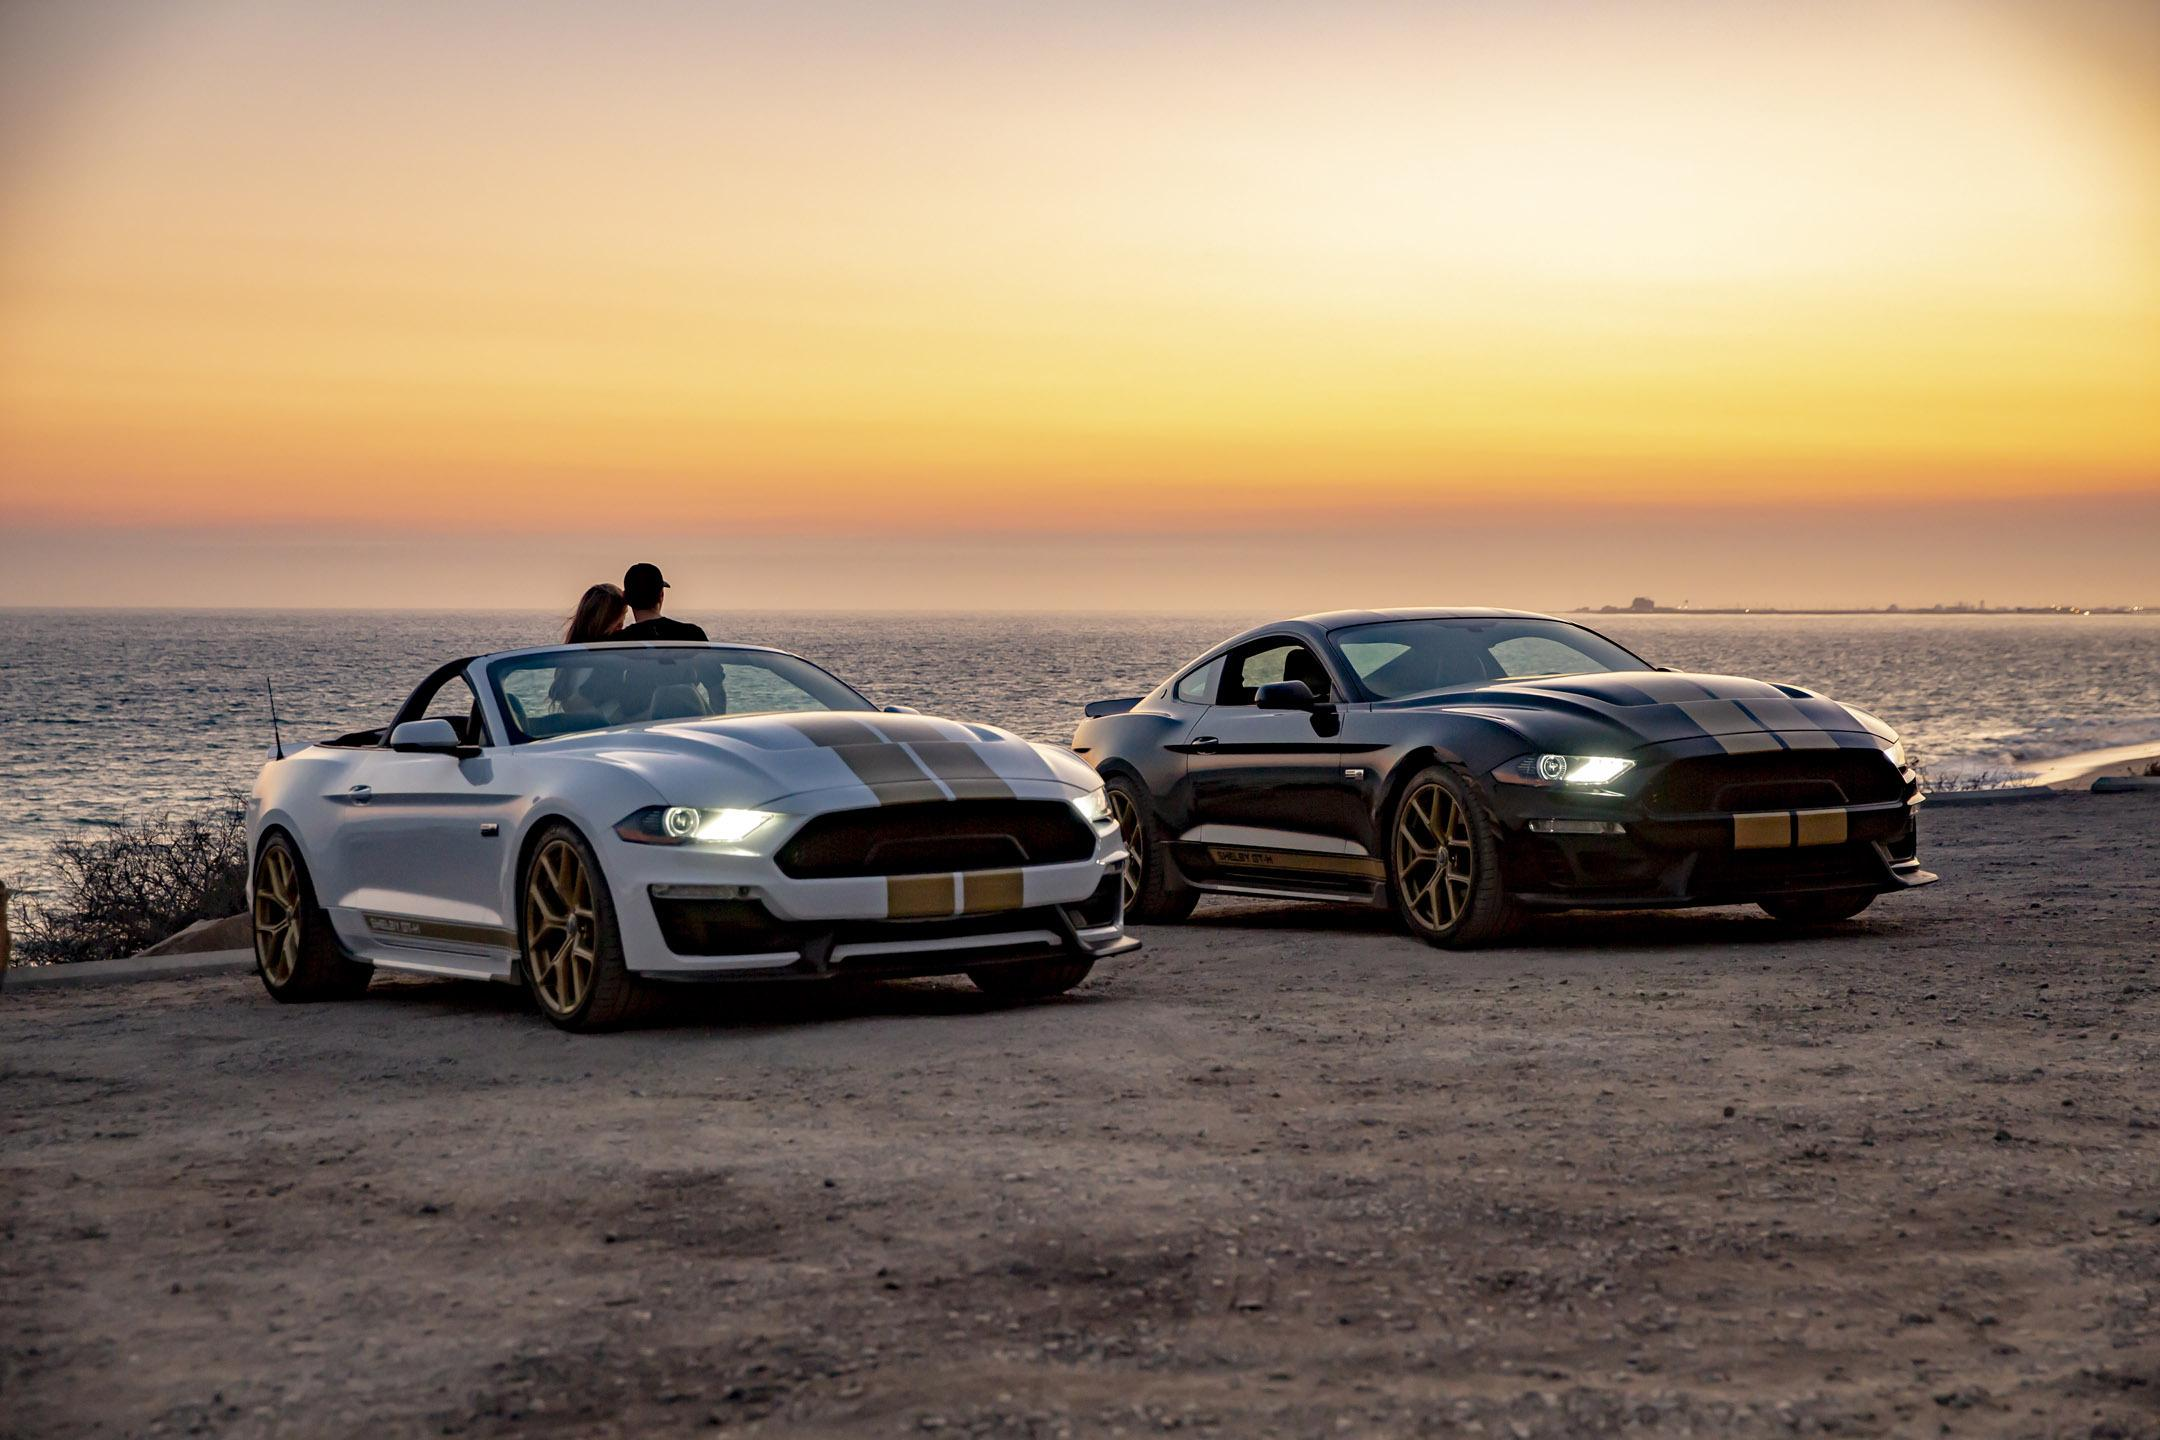 2019 Shelby GT squeezes 700+ horsepower from Mustang V8 ...